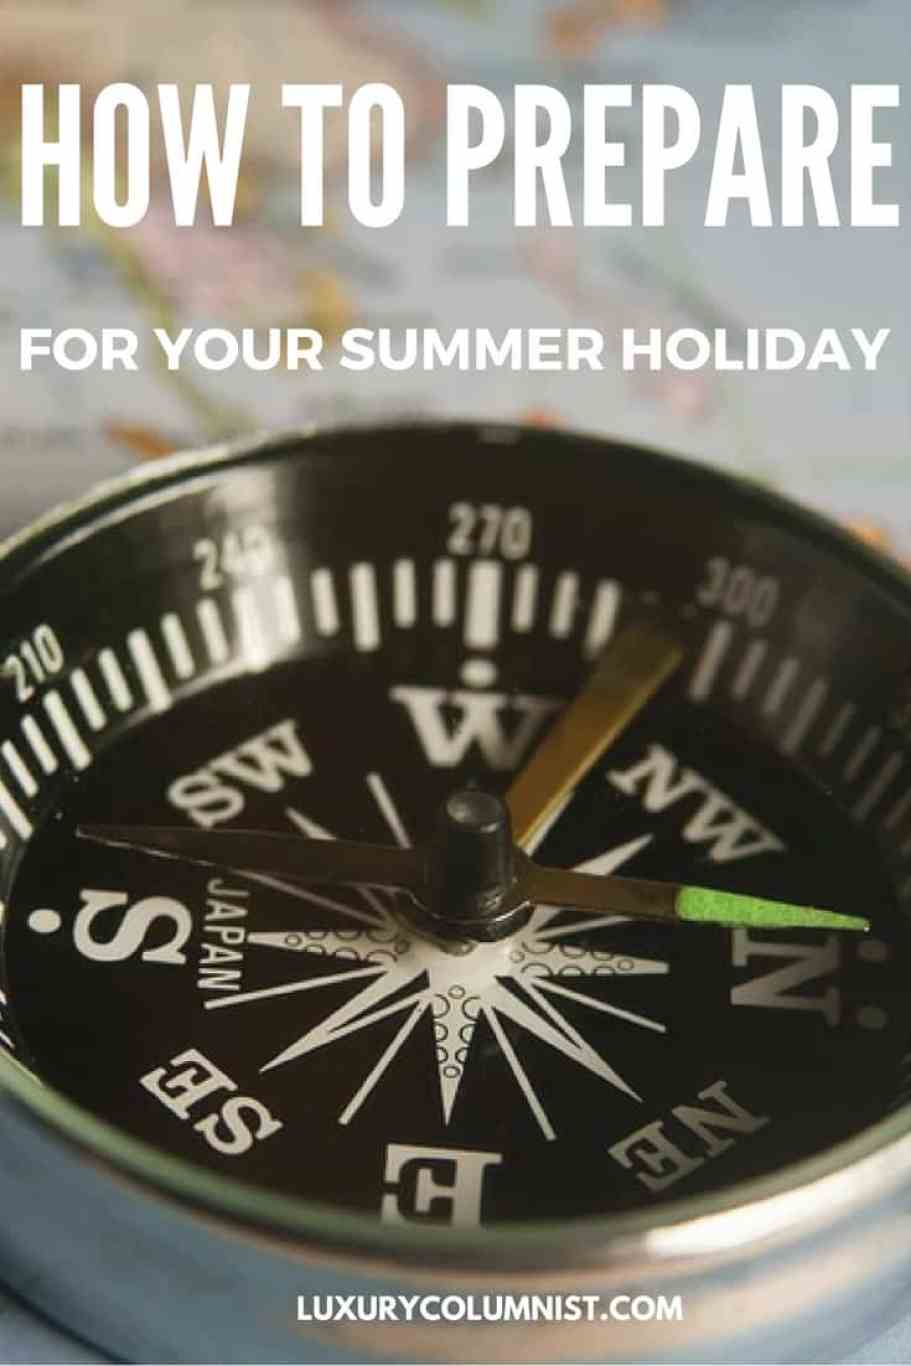 How to Prepare for Your Summer Holiday